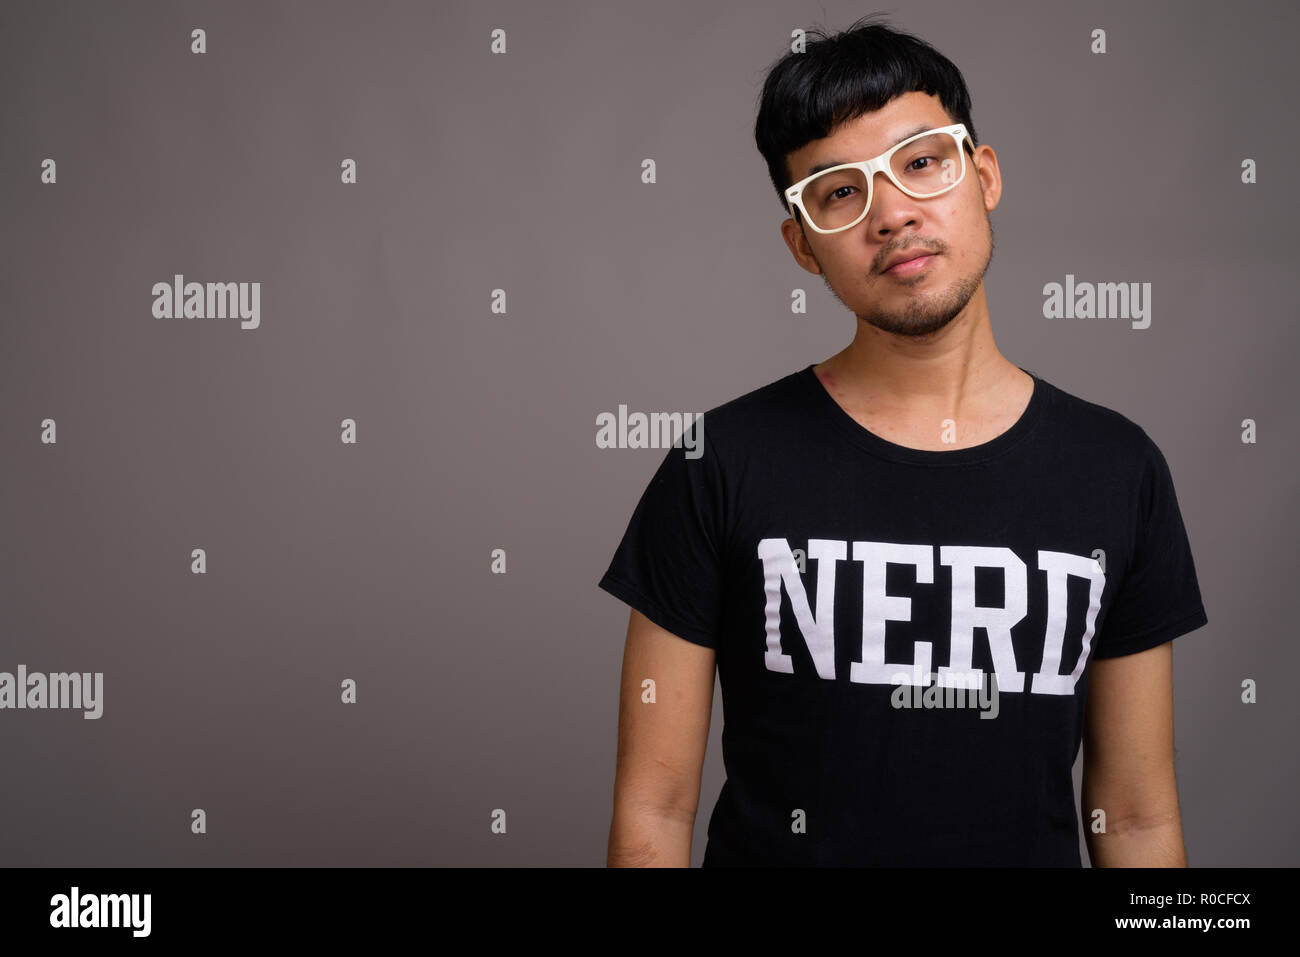 23ada37ba9fc Young Asian nerd man wearing eyeglasses against gray background - Stock  Image